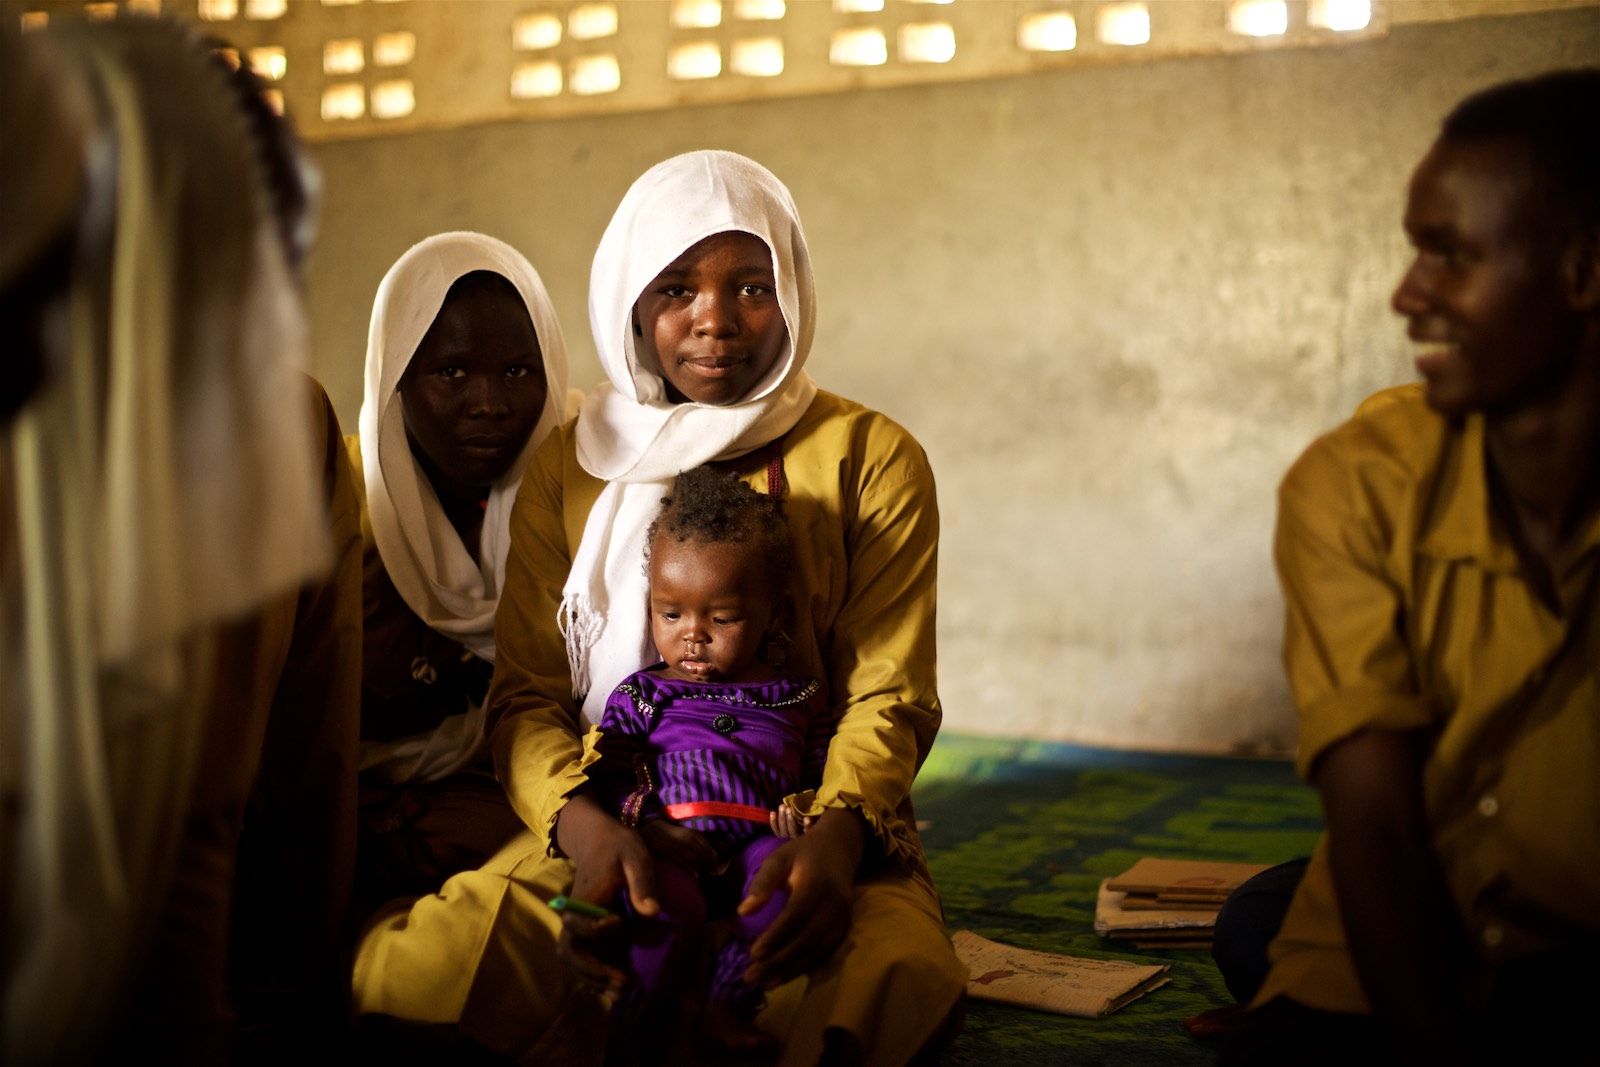 denis-bosnic-chad-school-jrs-jesuit-refugee-service-students-education-mercy-in-motion-29.jpg